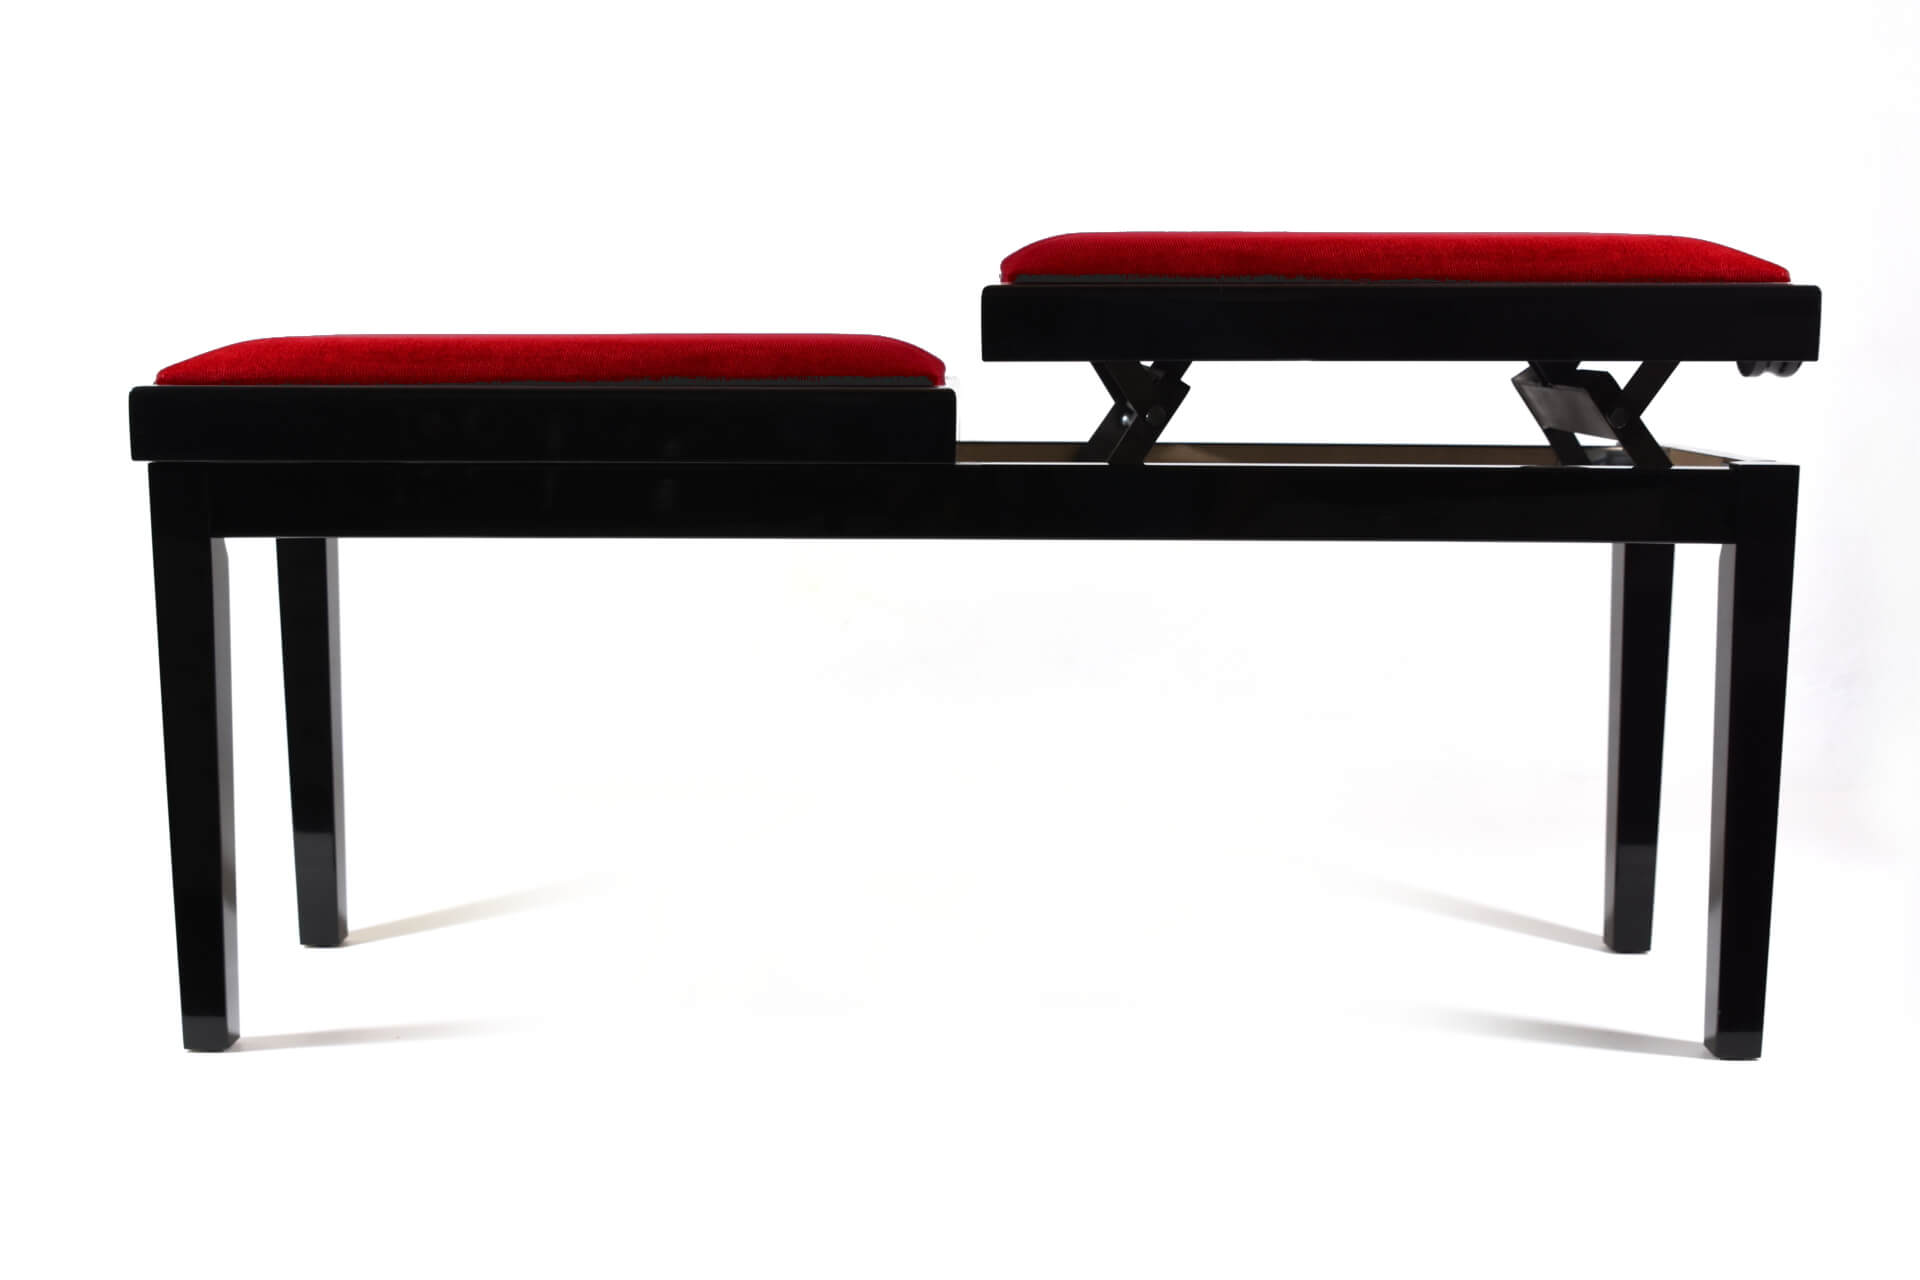 Double Small Bench For Piano Adjustable In Height Mascagni Red Velvet